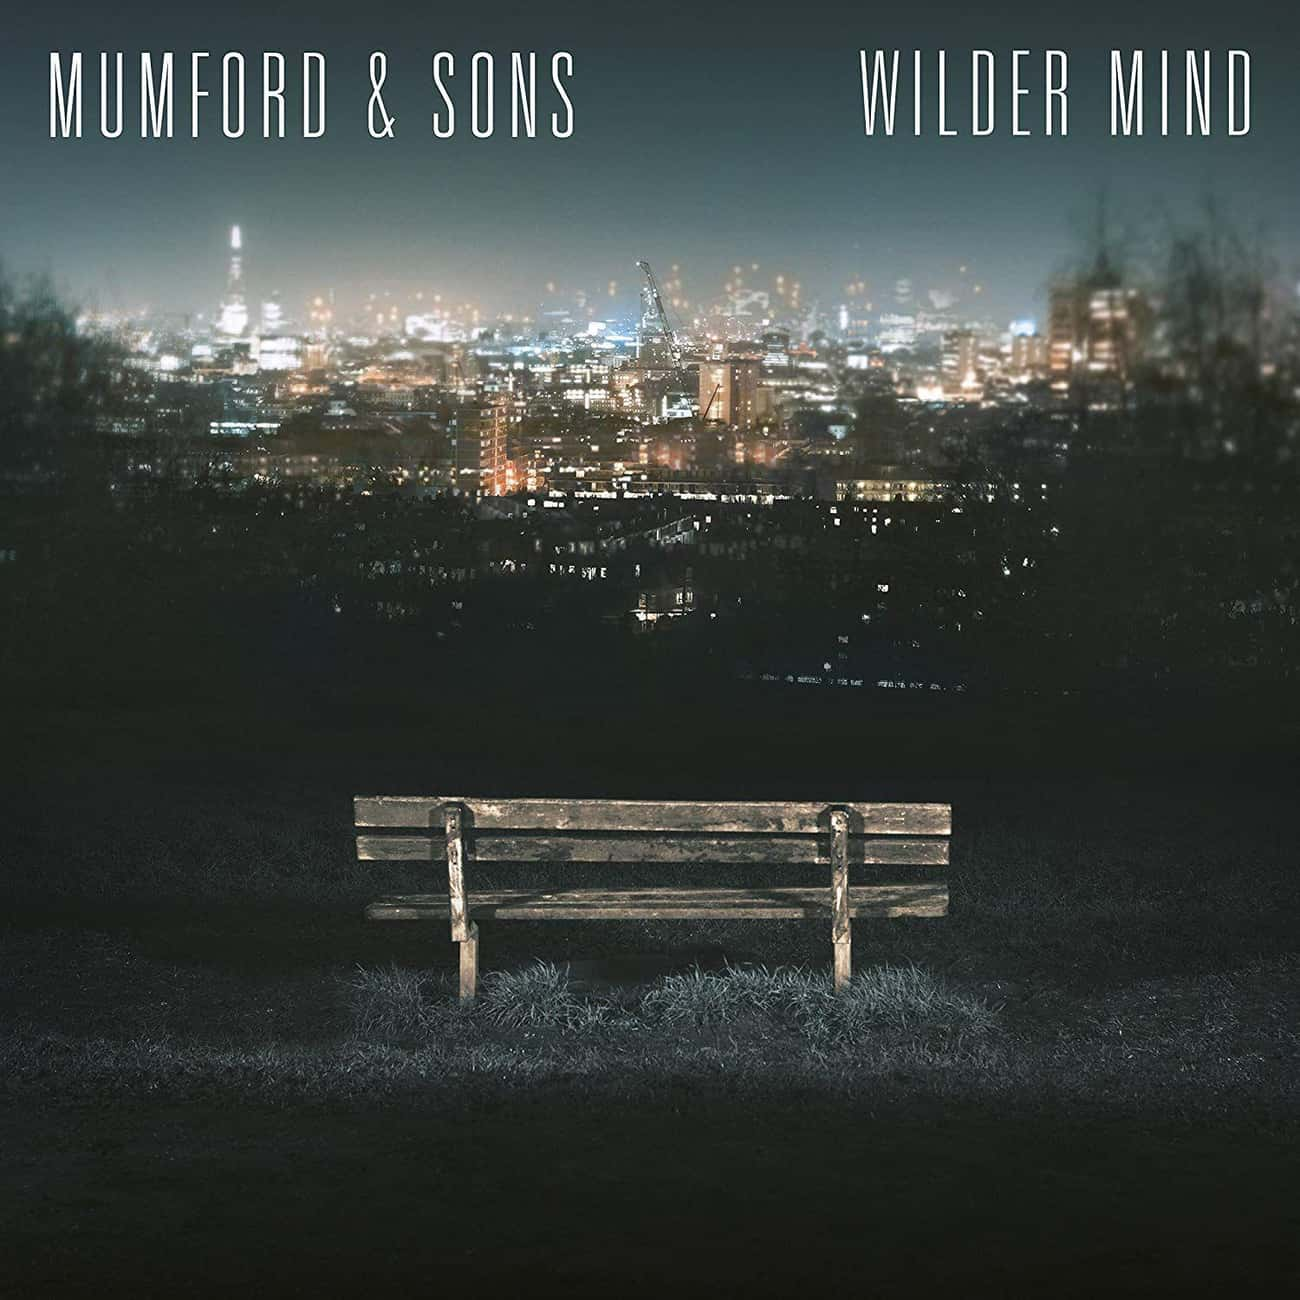 Wilder Mind is listed (or ranked) 3 on the list The Best Mumford & Sons Albums, Ranked